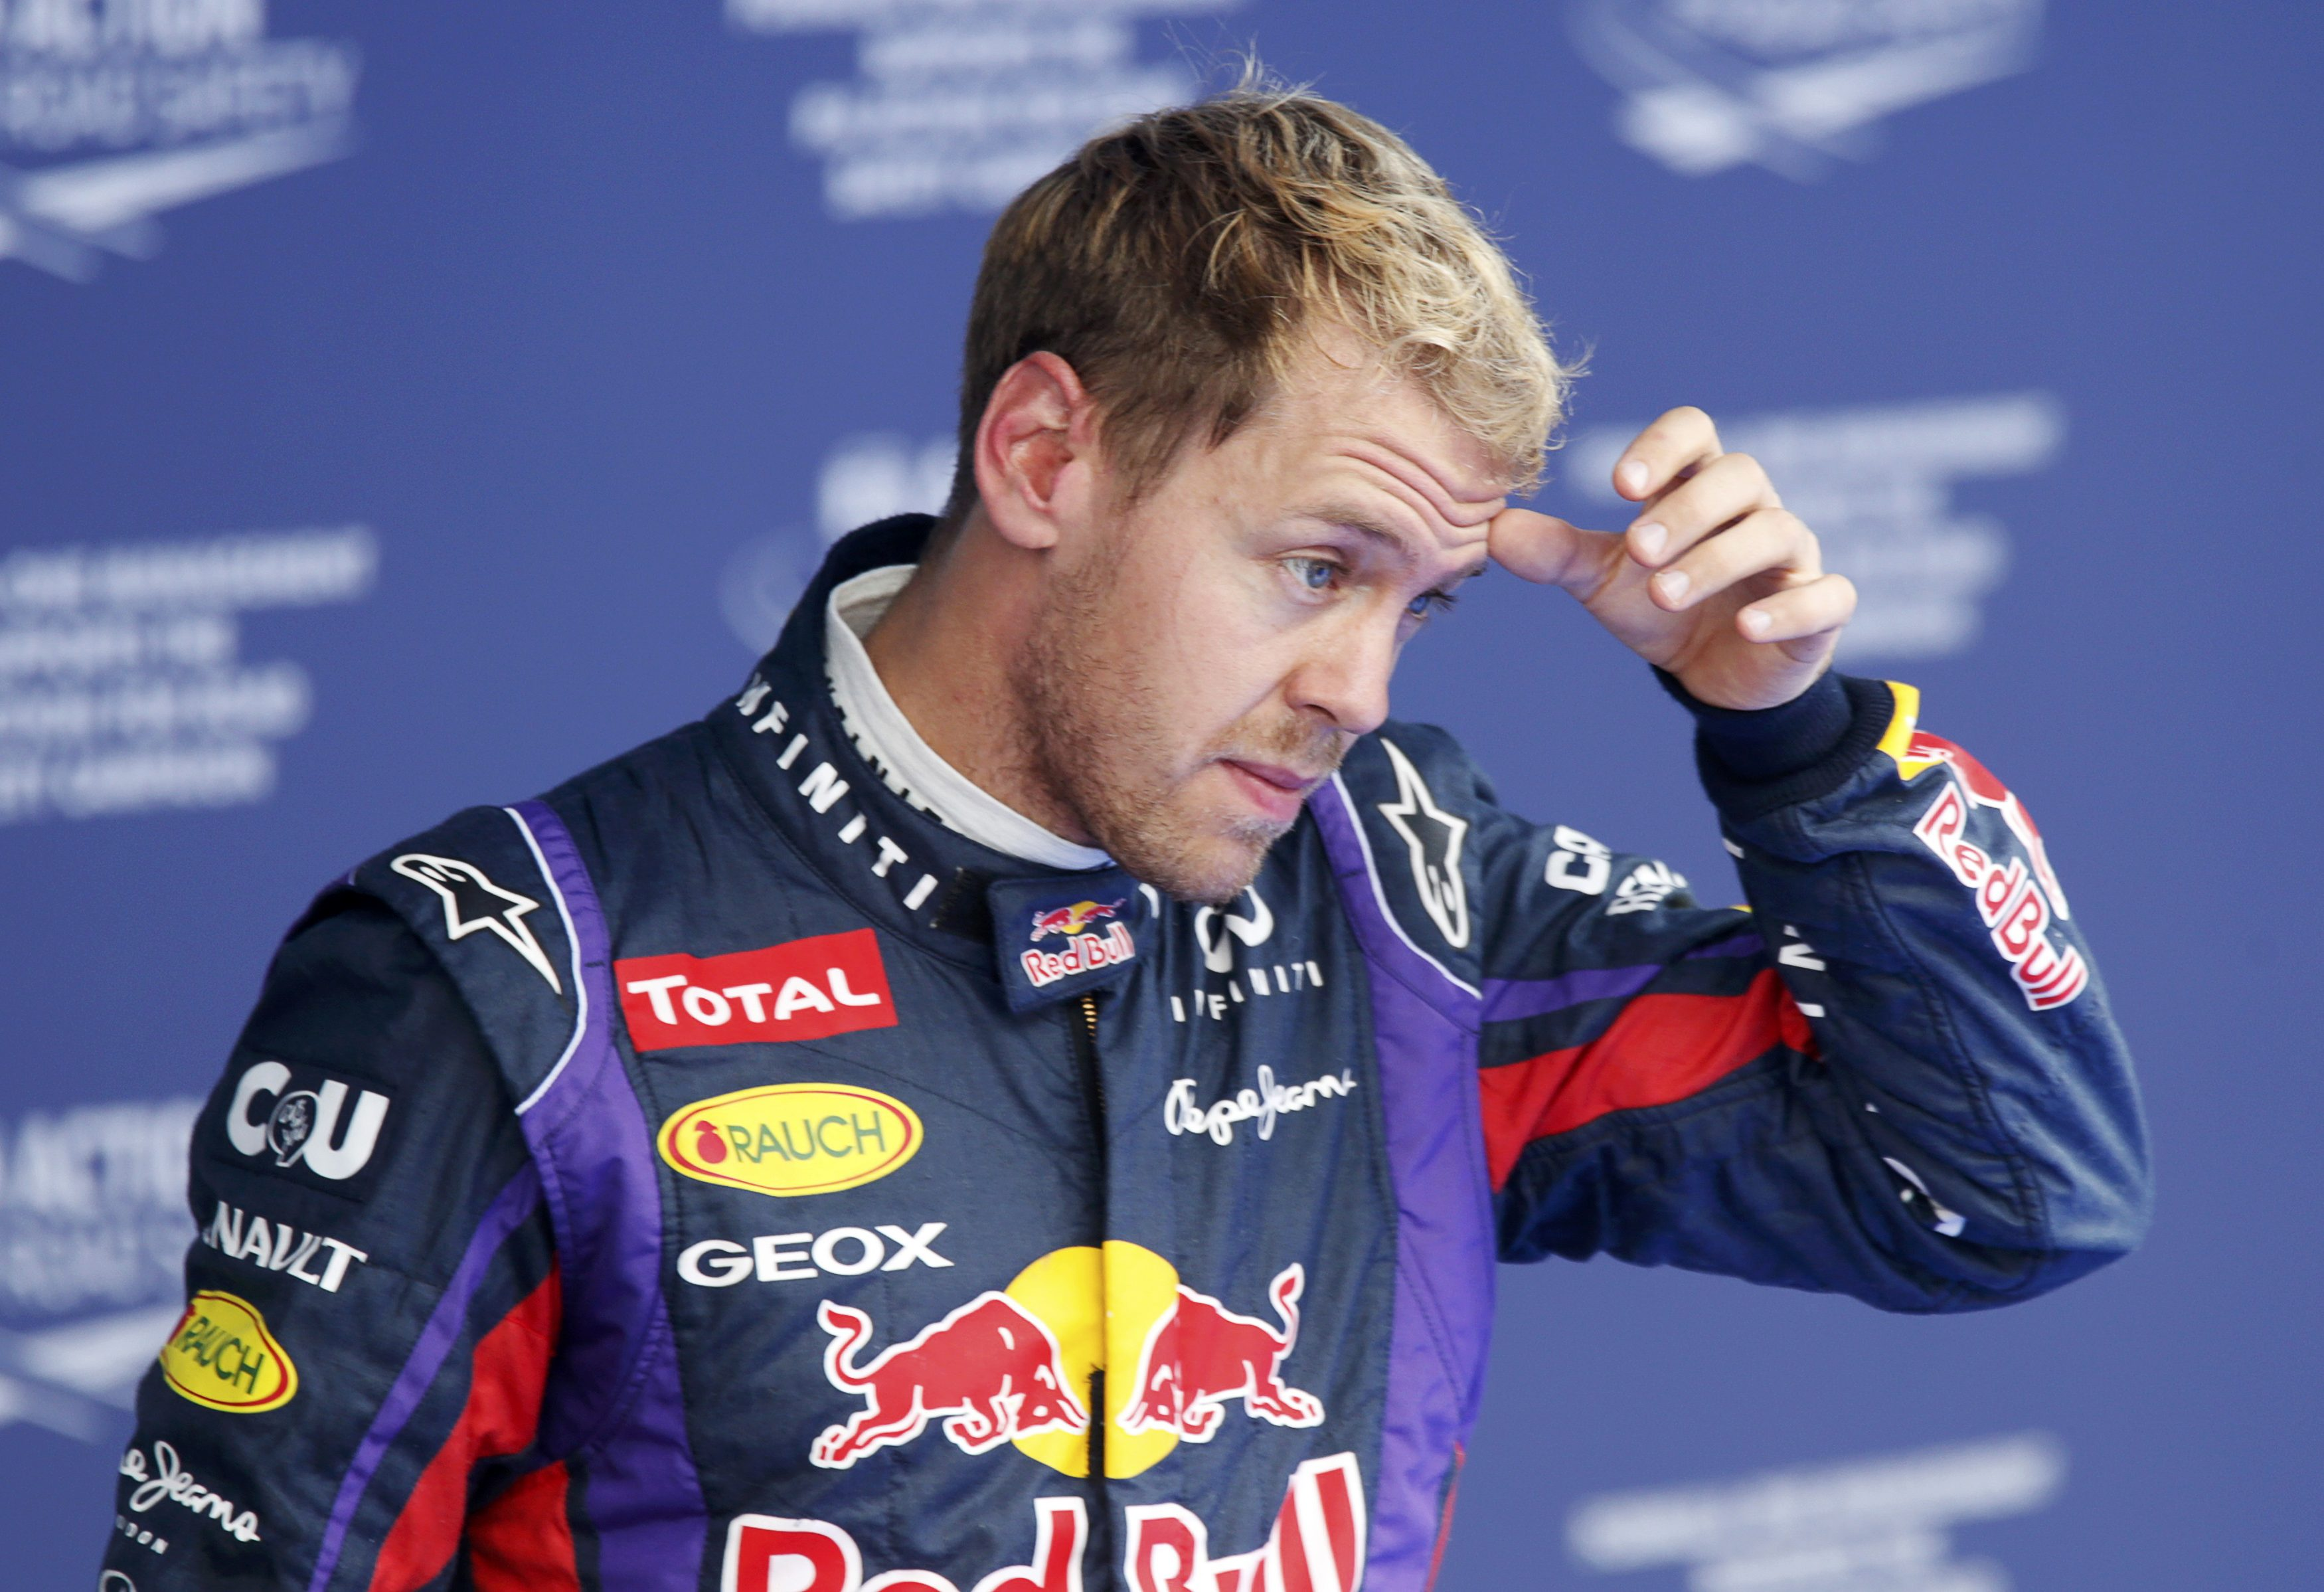 Red Bull Formula One driver Vettel reacts after the qualifying session for the Korean F1 Grand Prix in Yeongam